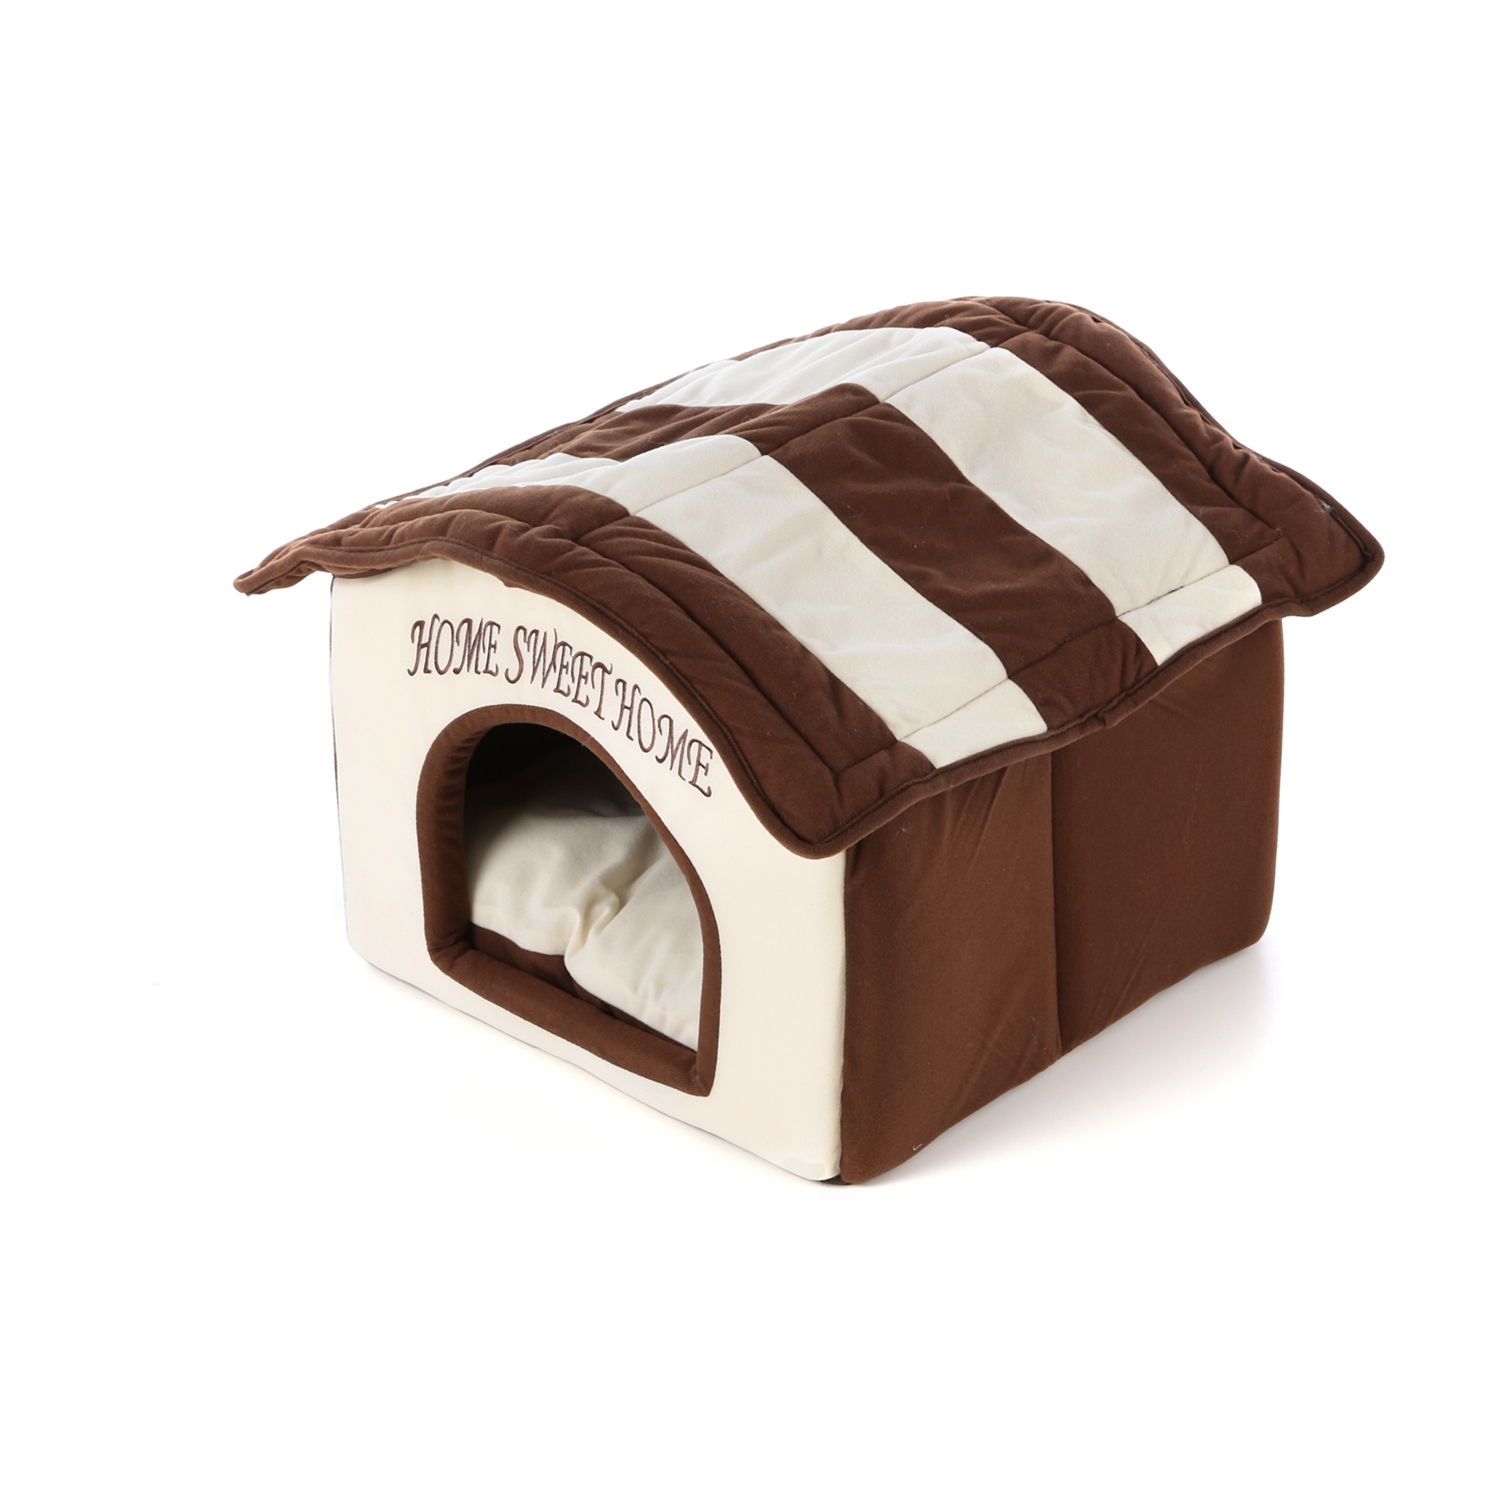 Home Sweet Home Dog Dome Dog Bed